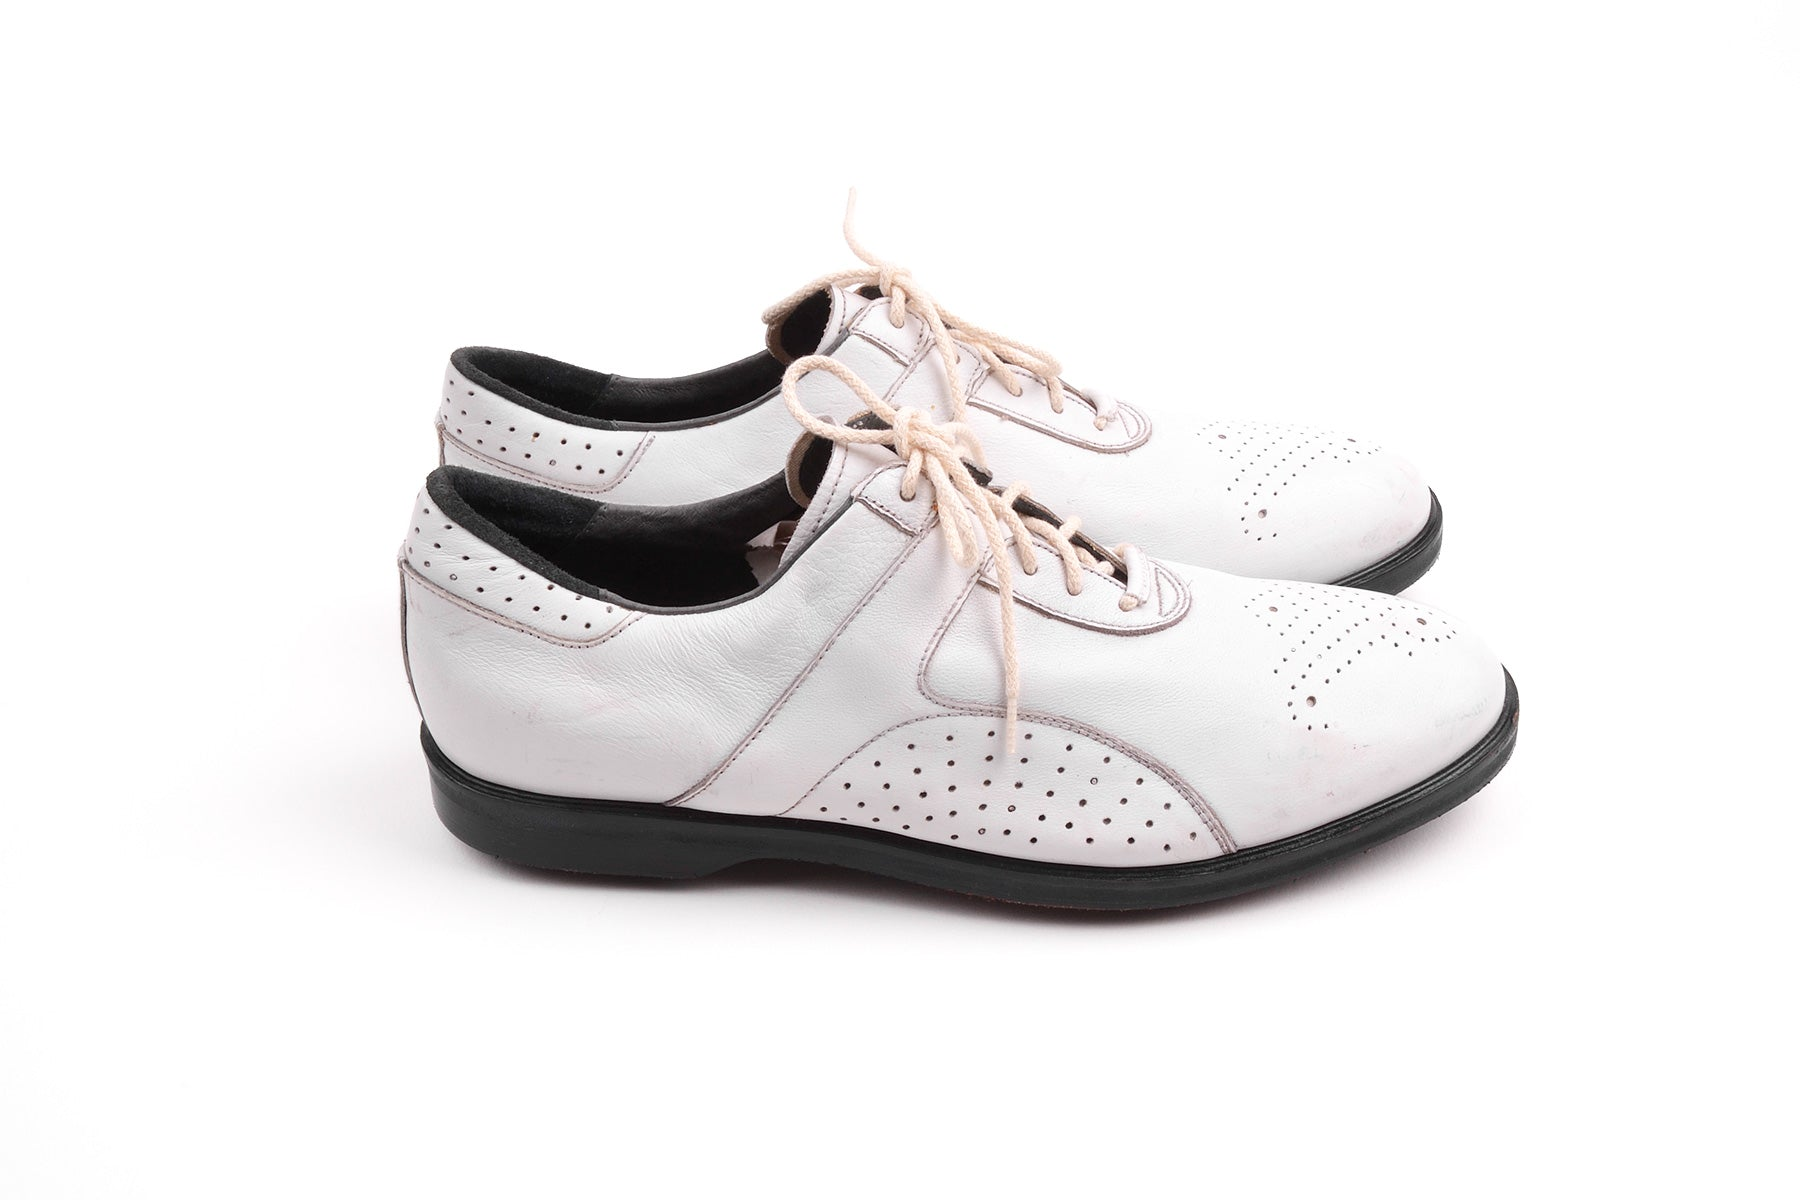 2005 S/S WHITE GOLFING SHOES REPLICA 14 LINE